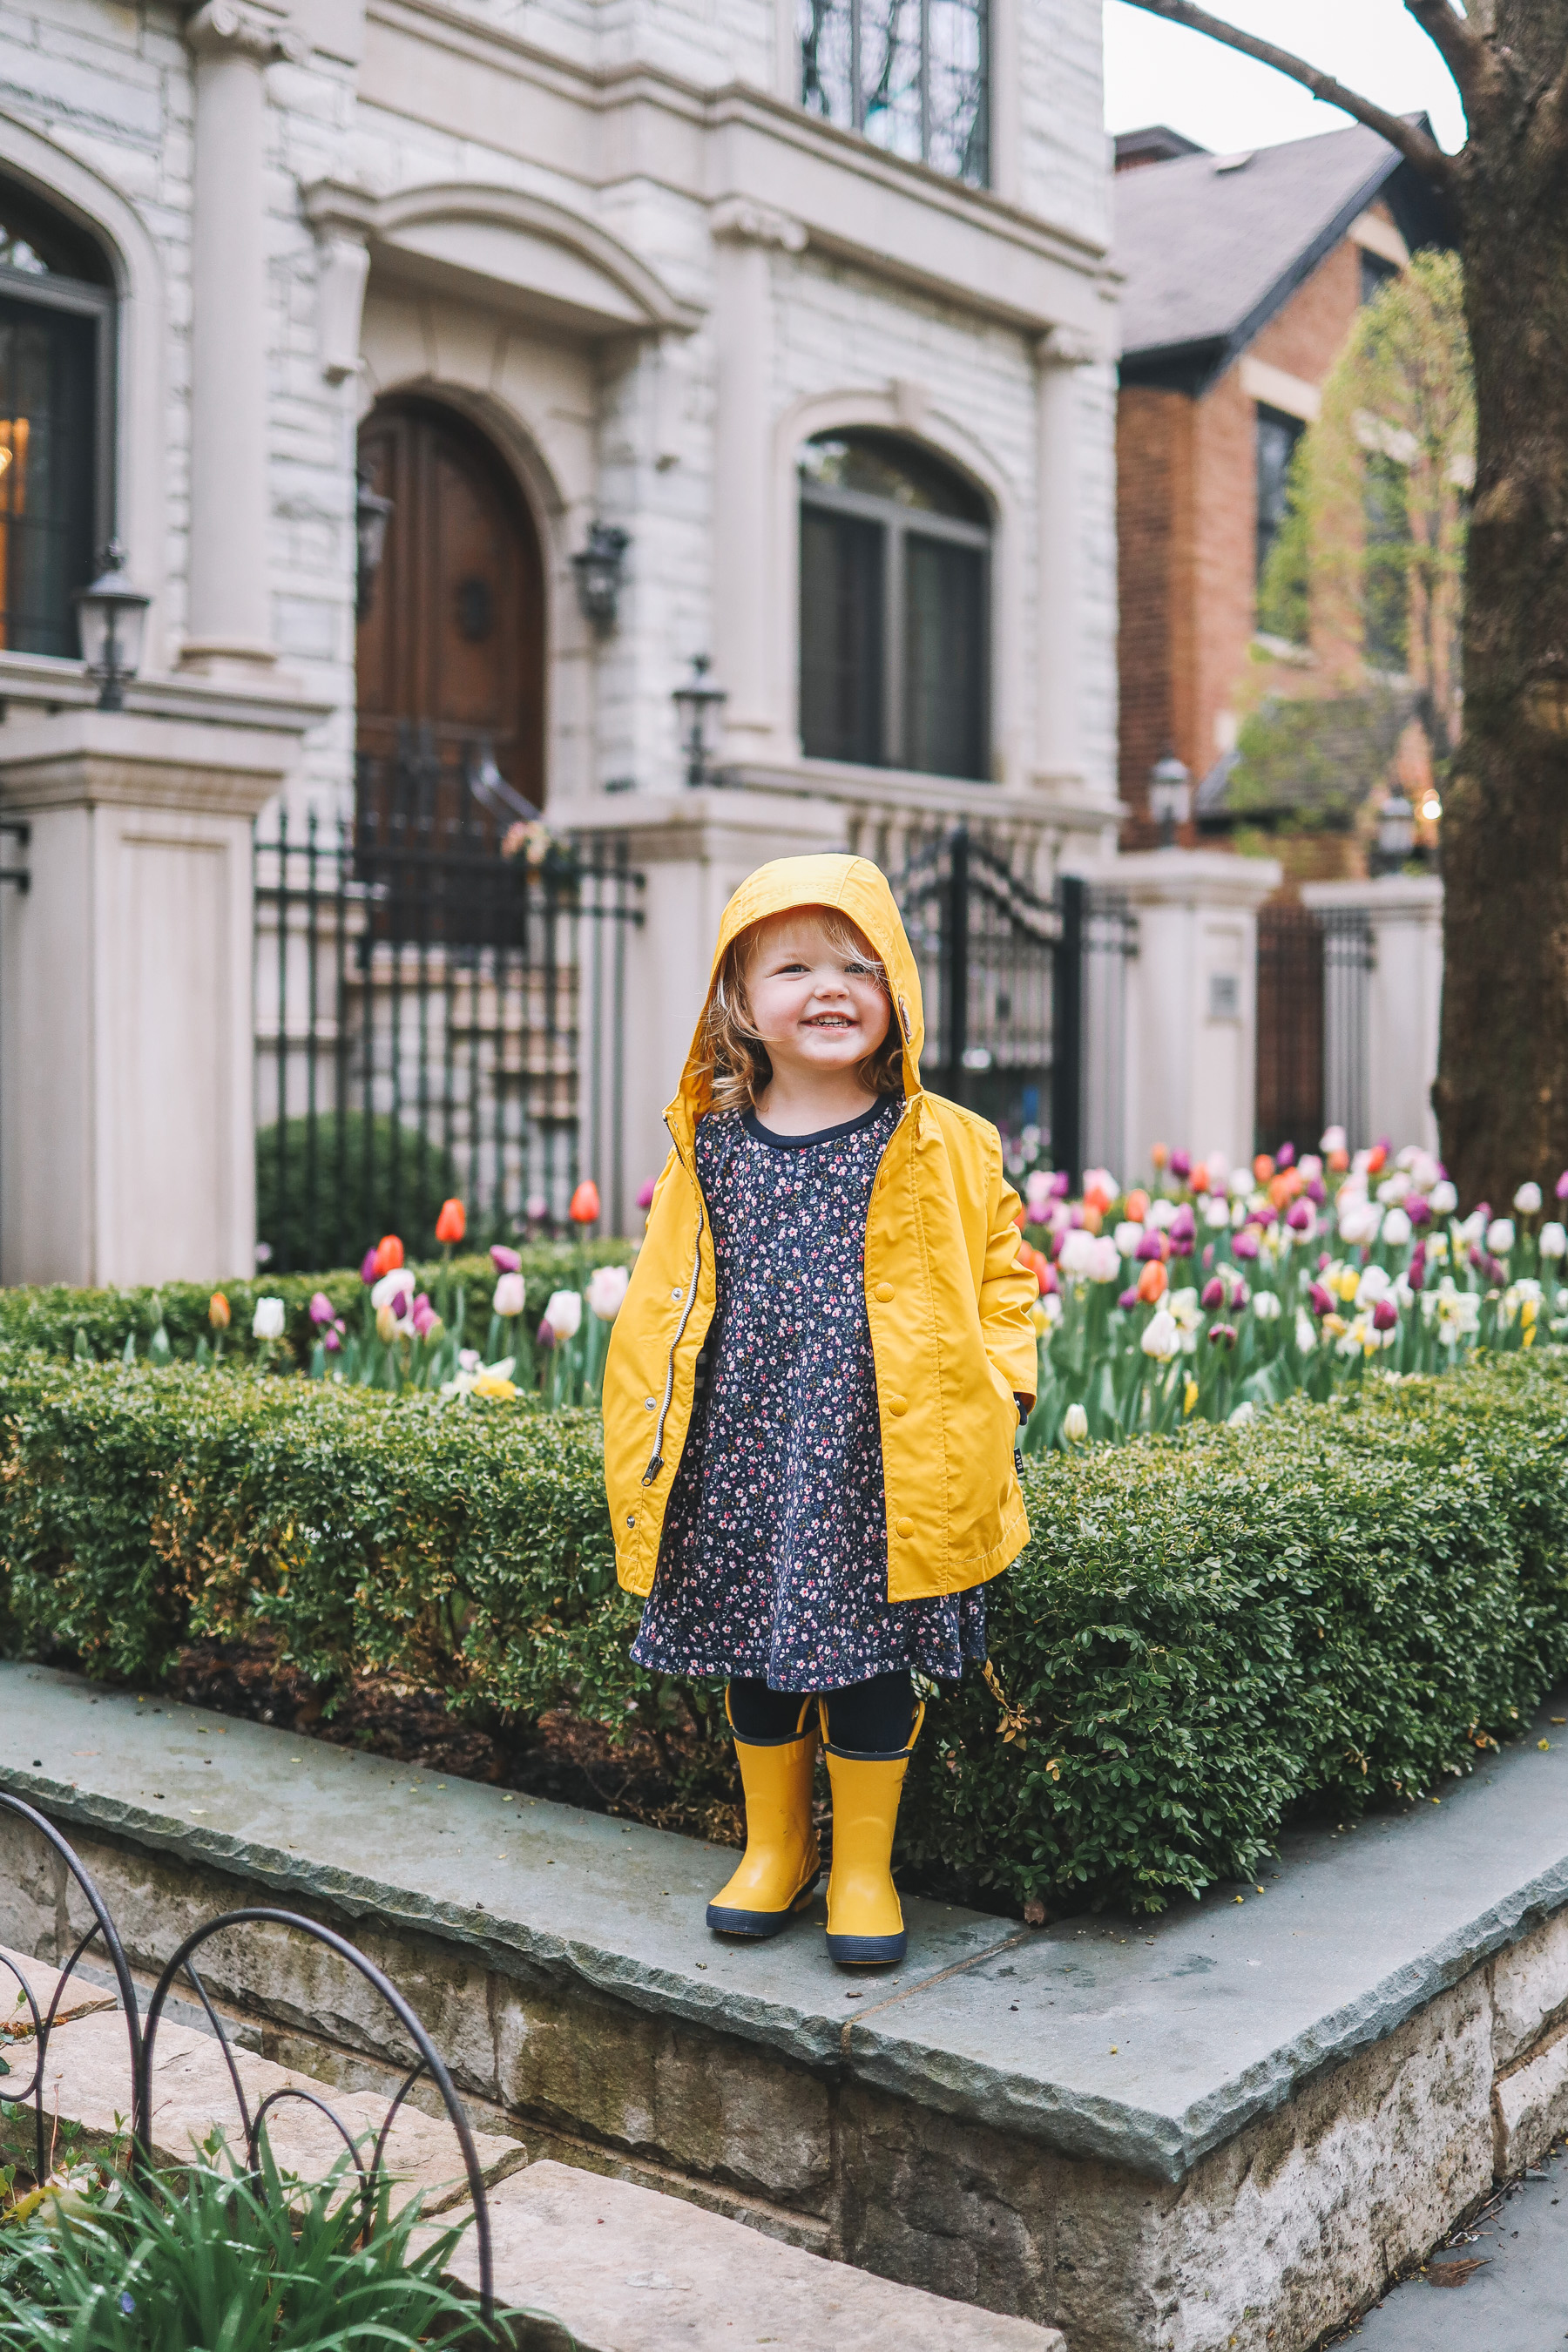 April Showers on the blog